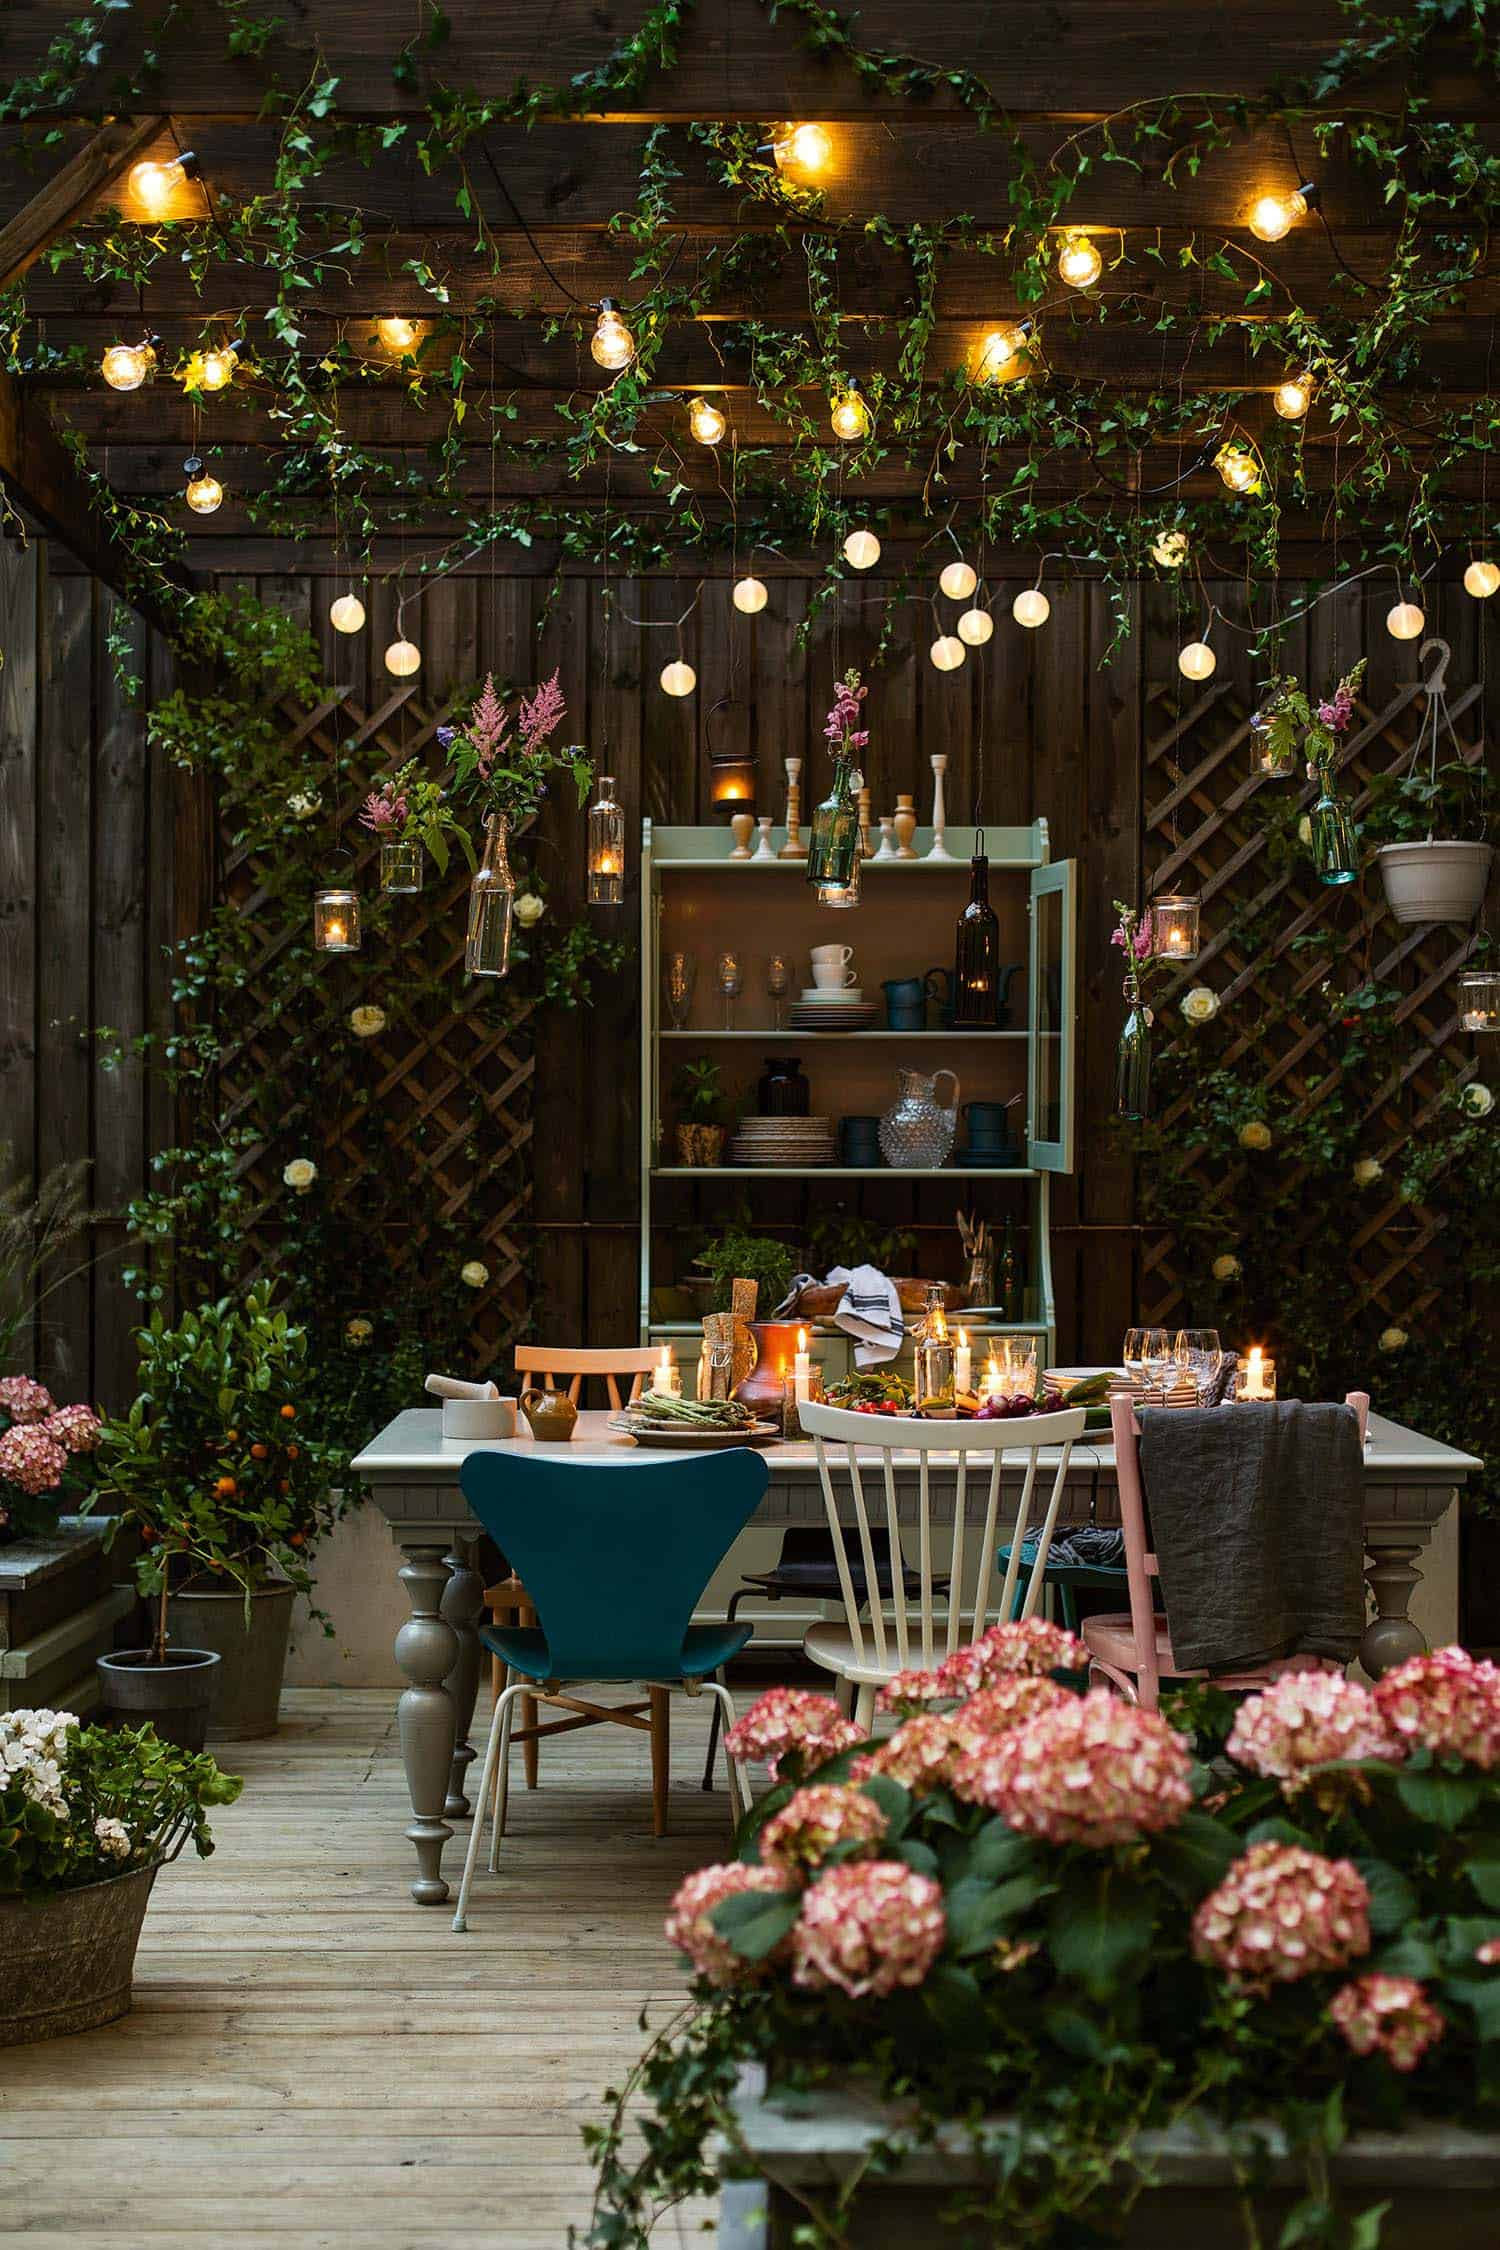 bohemian garden design ideas 01 1 kindesign - Brown Garden Design